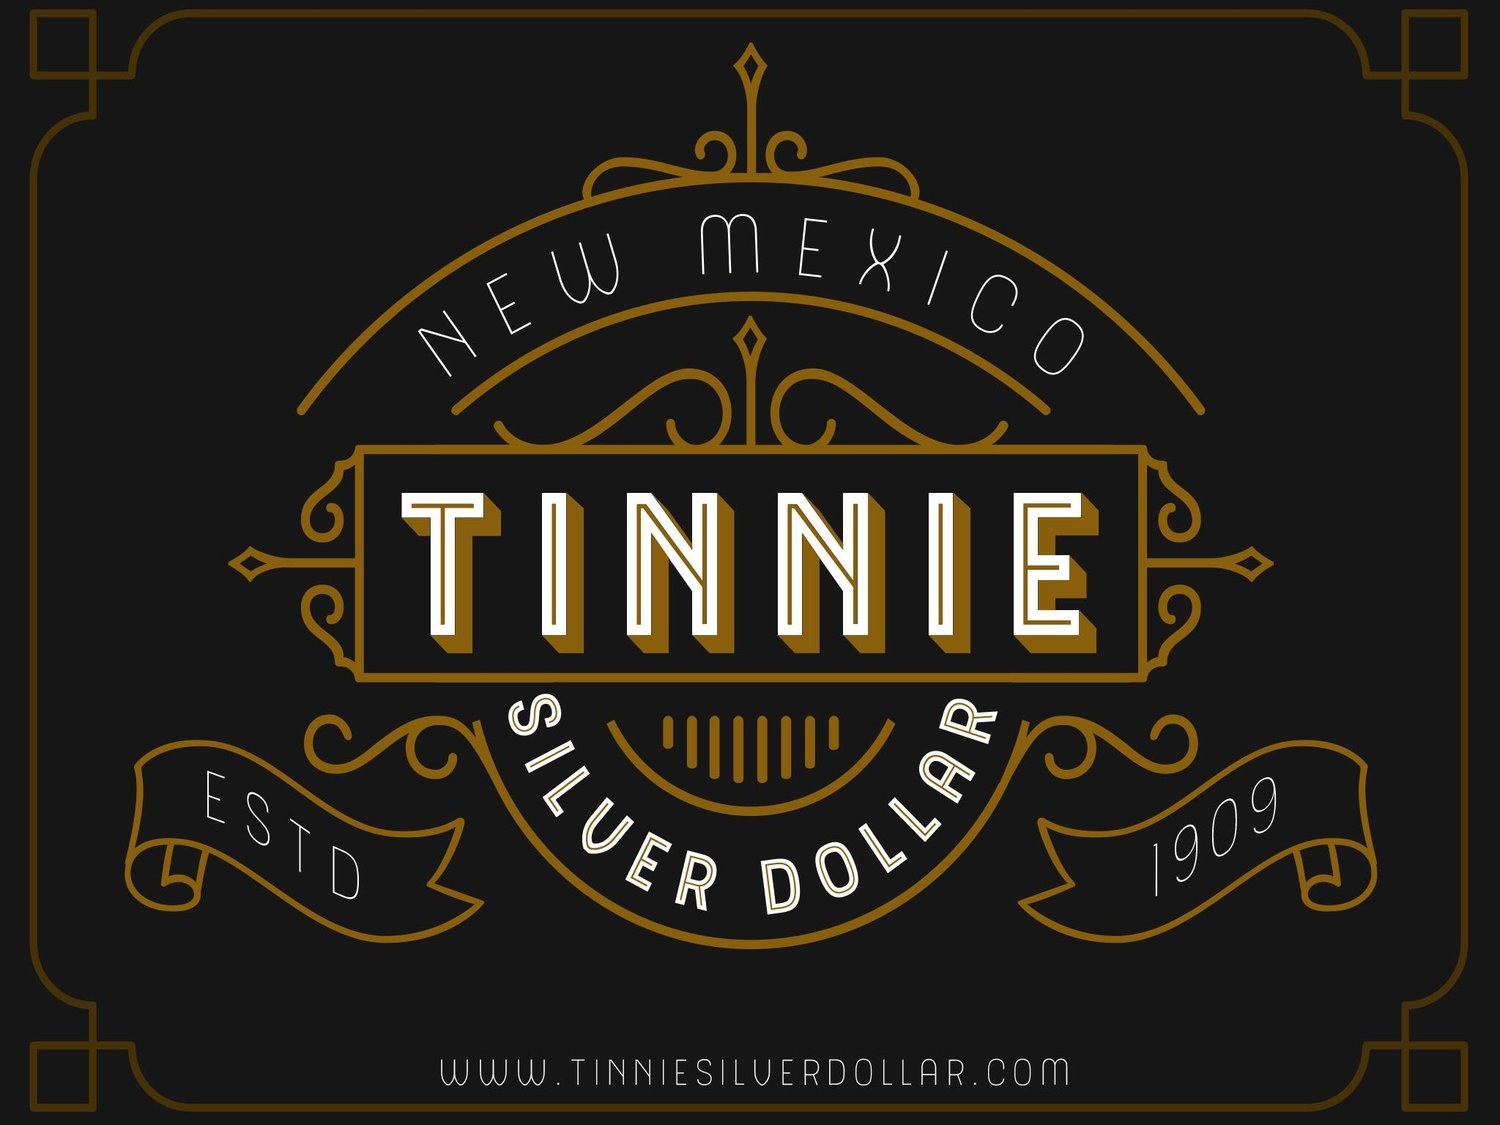 Tinnie Silver Dollar Mercantile & Cafe in Tinnie, NM